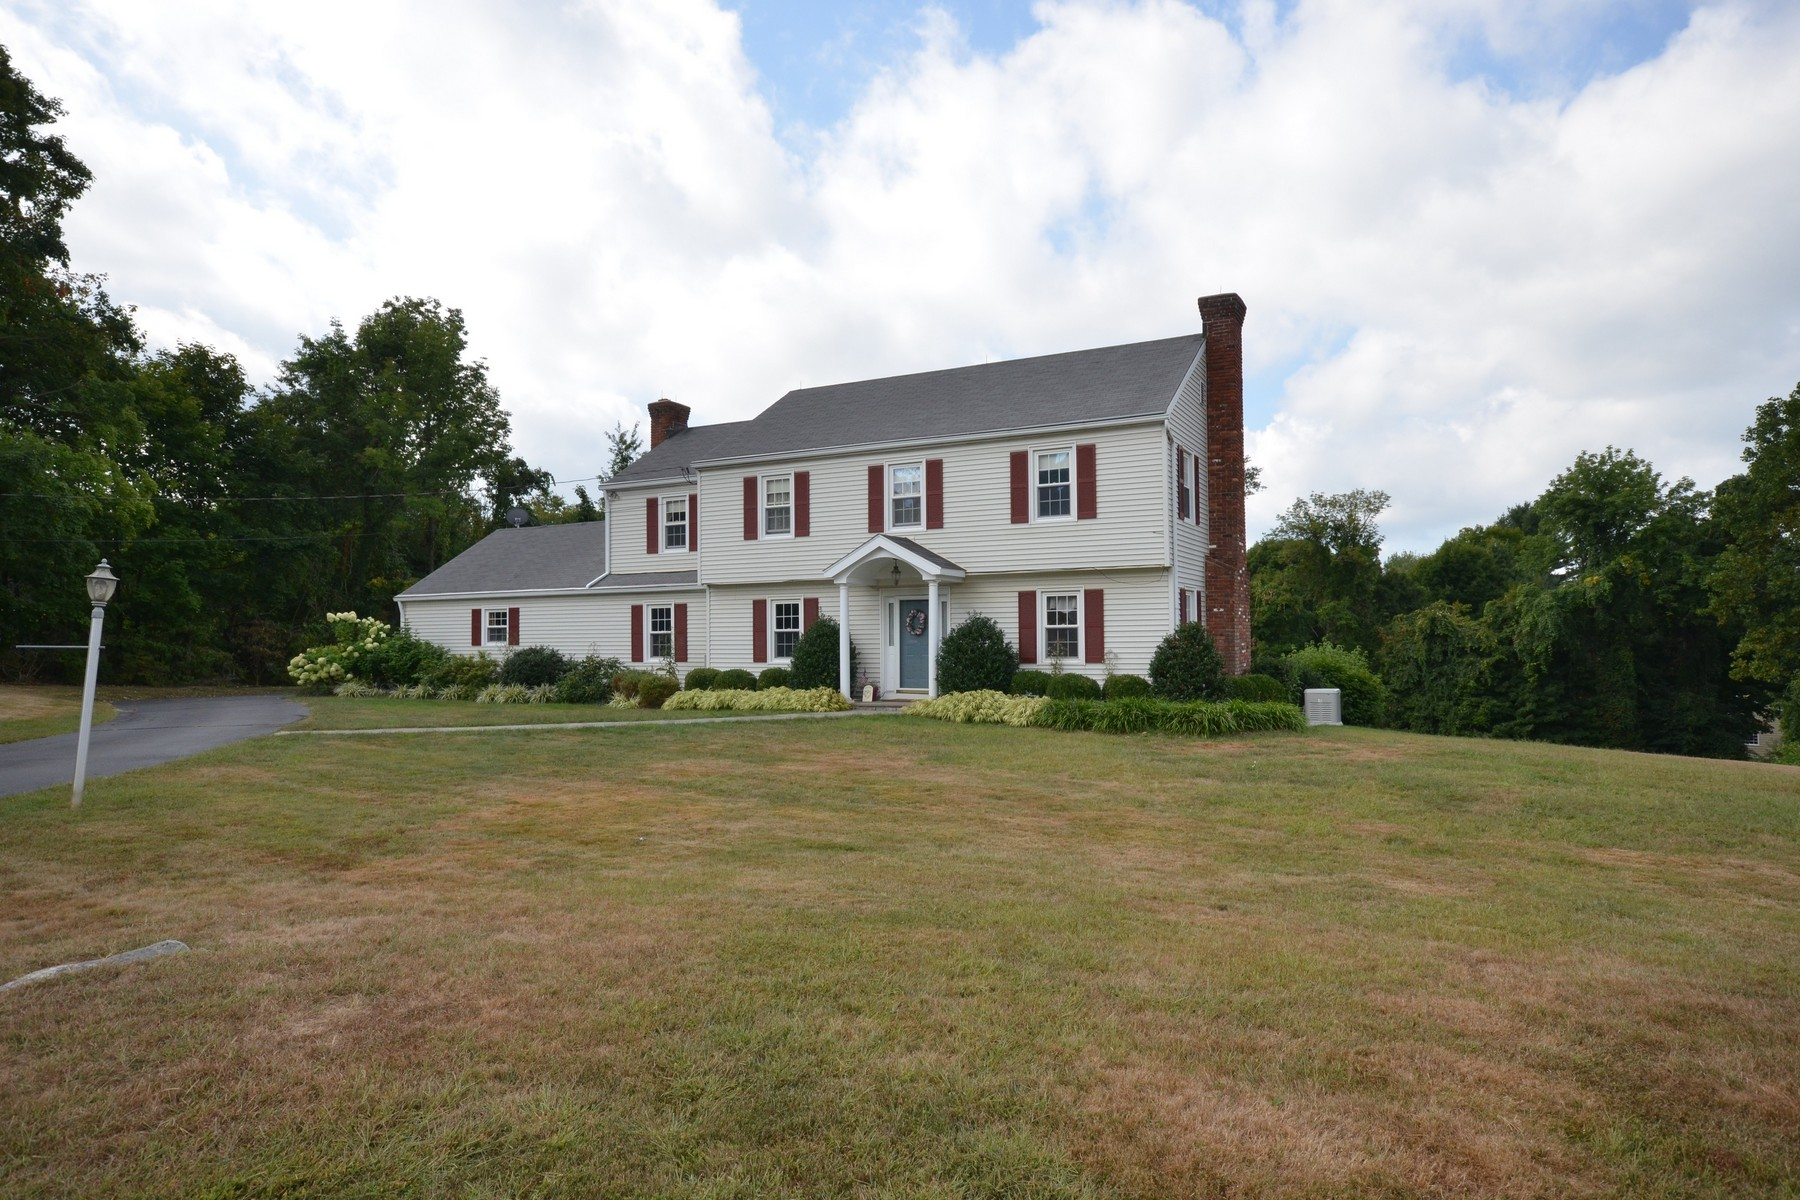 Single Family Home for Sale at 4 Bedroom Colonial on Park-like Acre 70 Powderhorn Drive Ridgefield, Connecticut 06877 United States